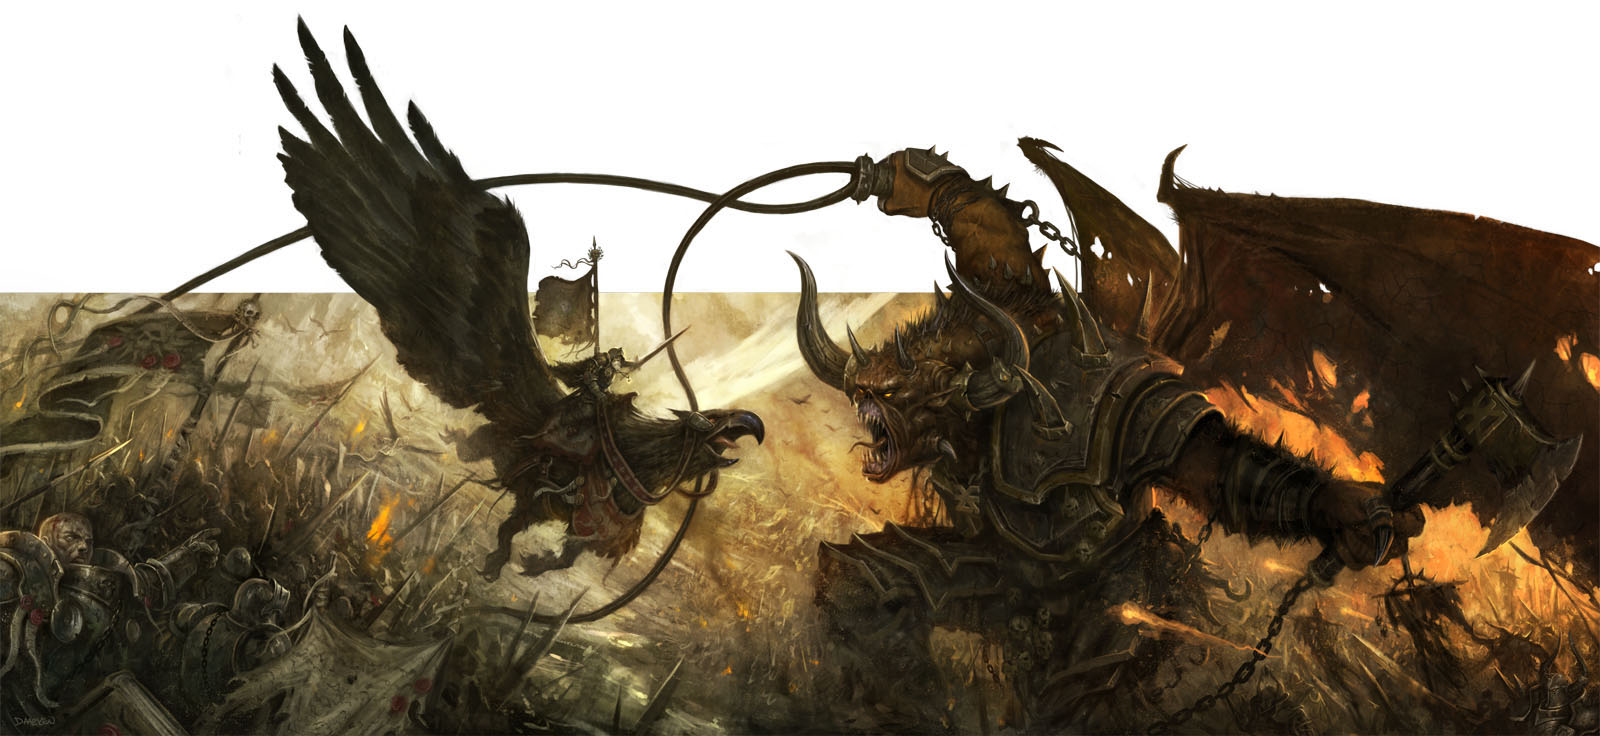 1600x736_3107_Warhammer_Invasion_2d_fantasy_battle_monsters_army_warhammer_picture_image_digital_art.jpg